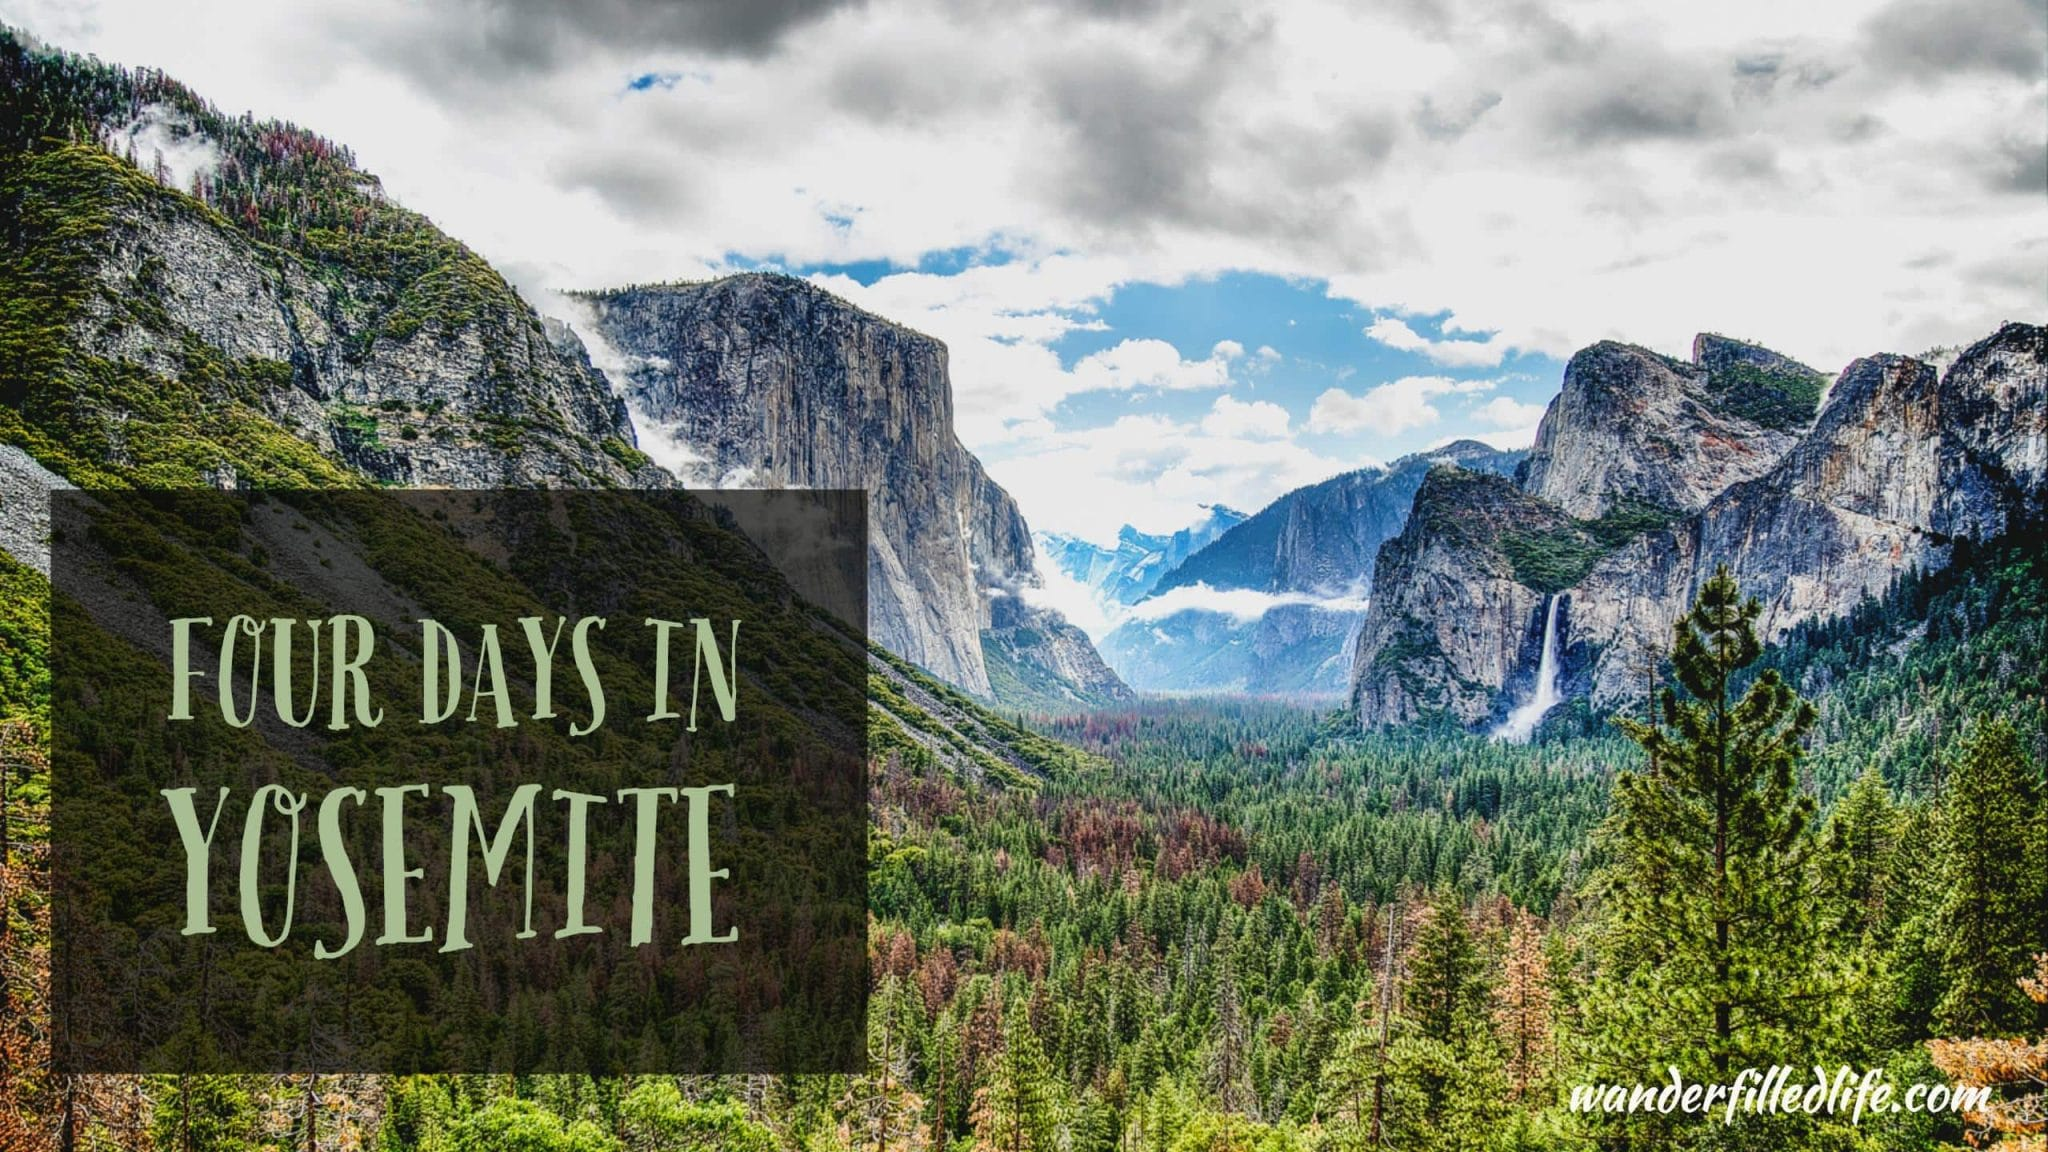 Four Days in Yosemite National Park